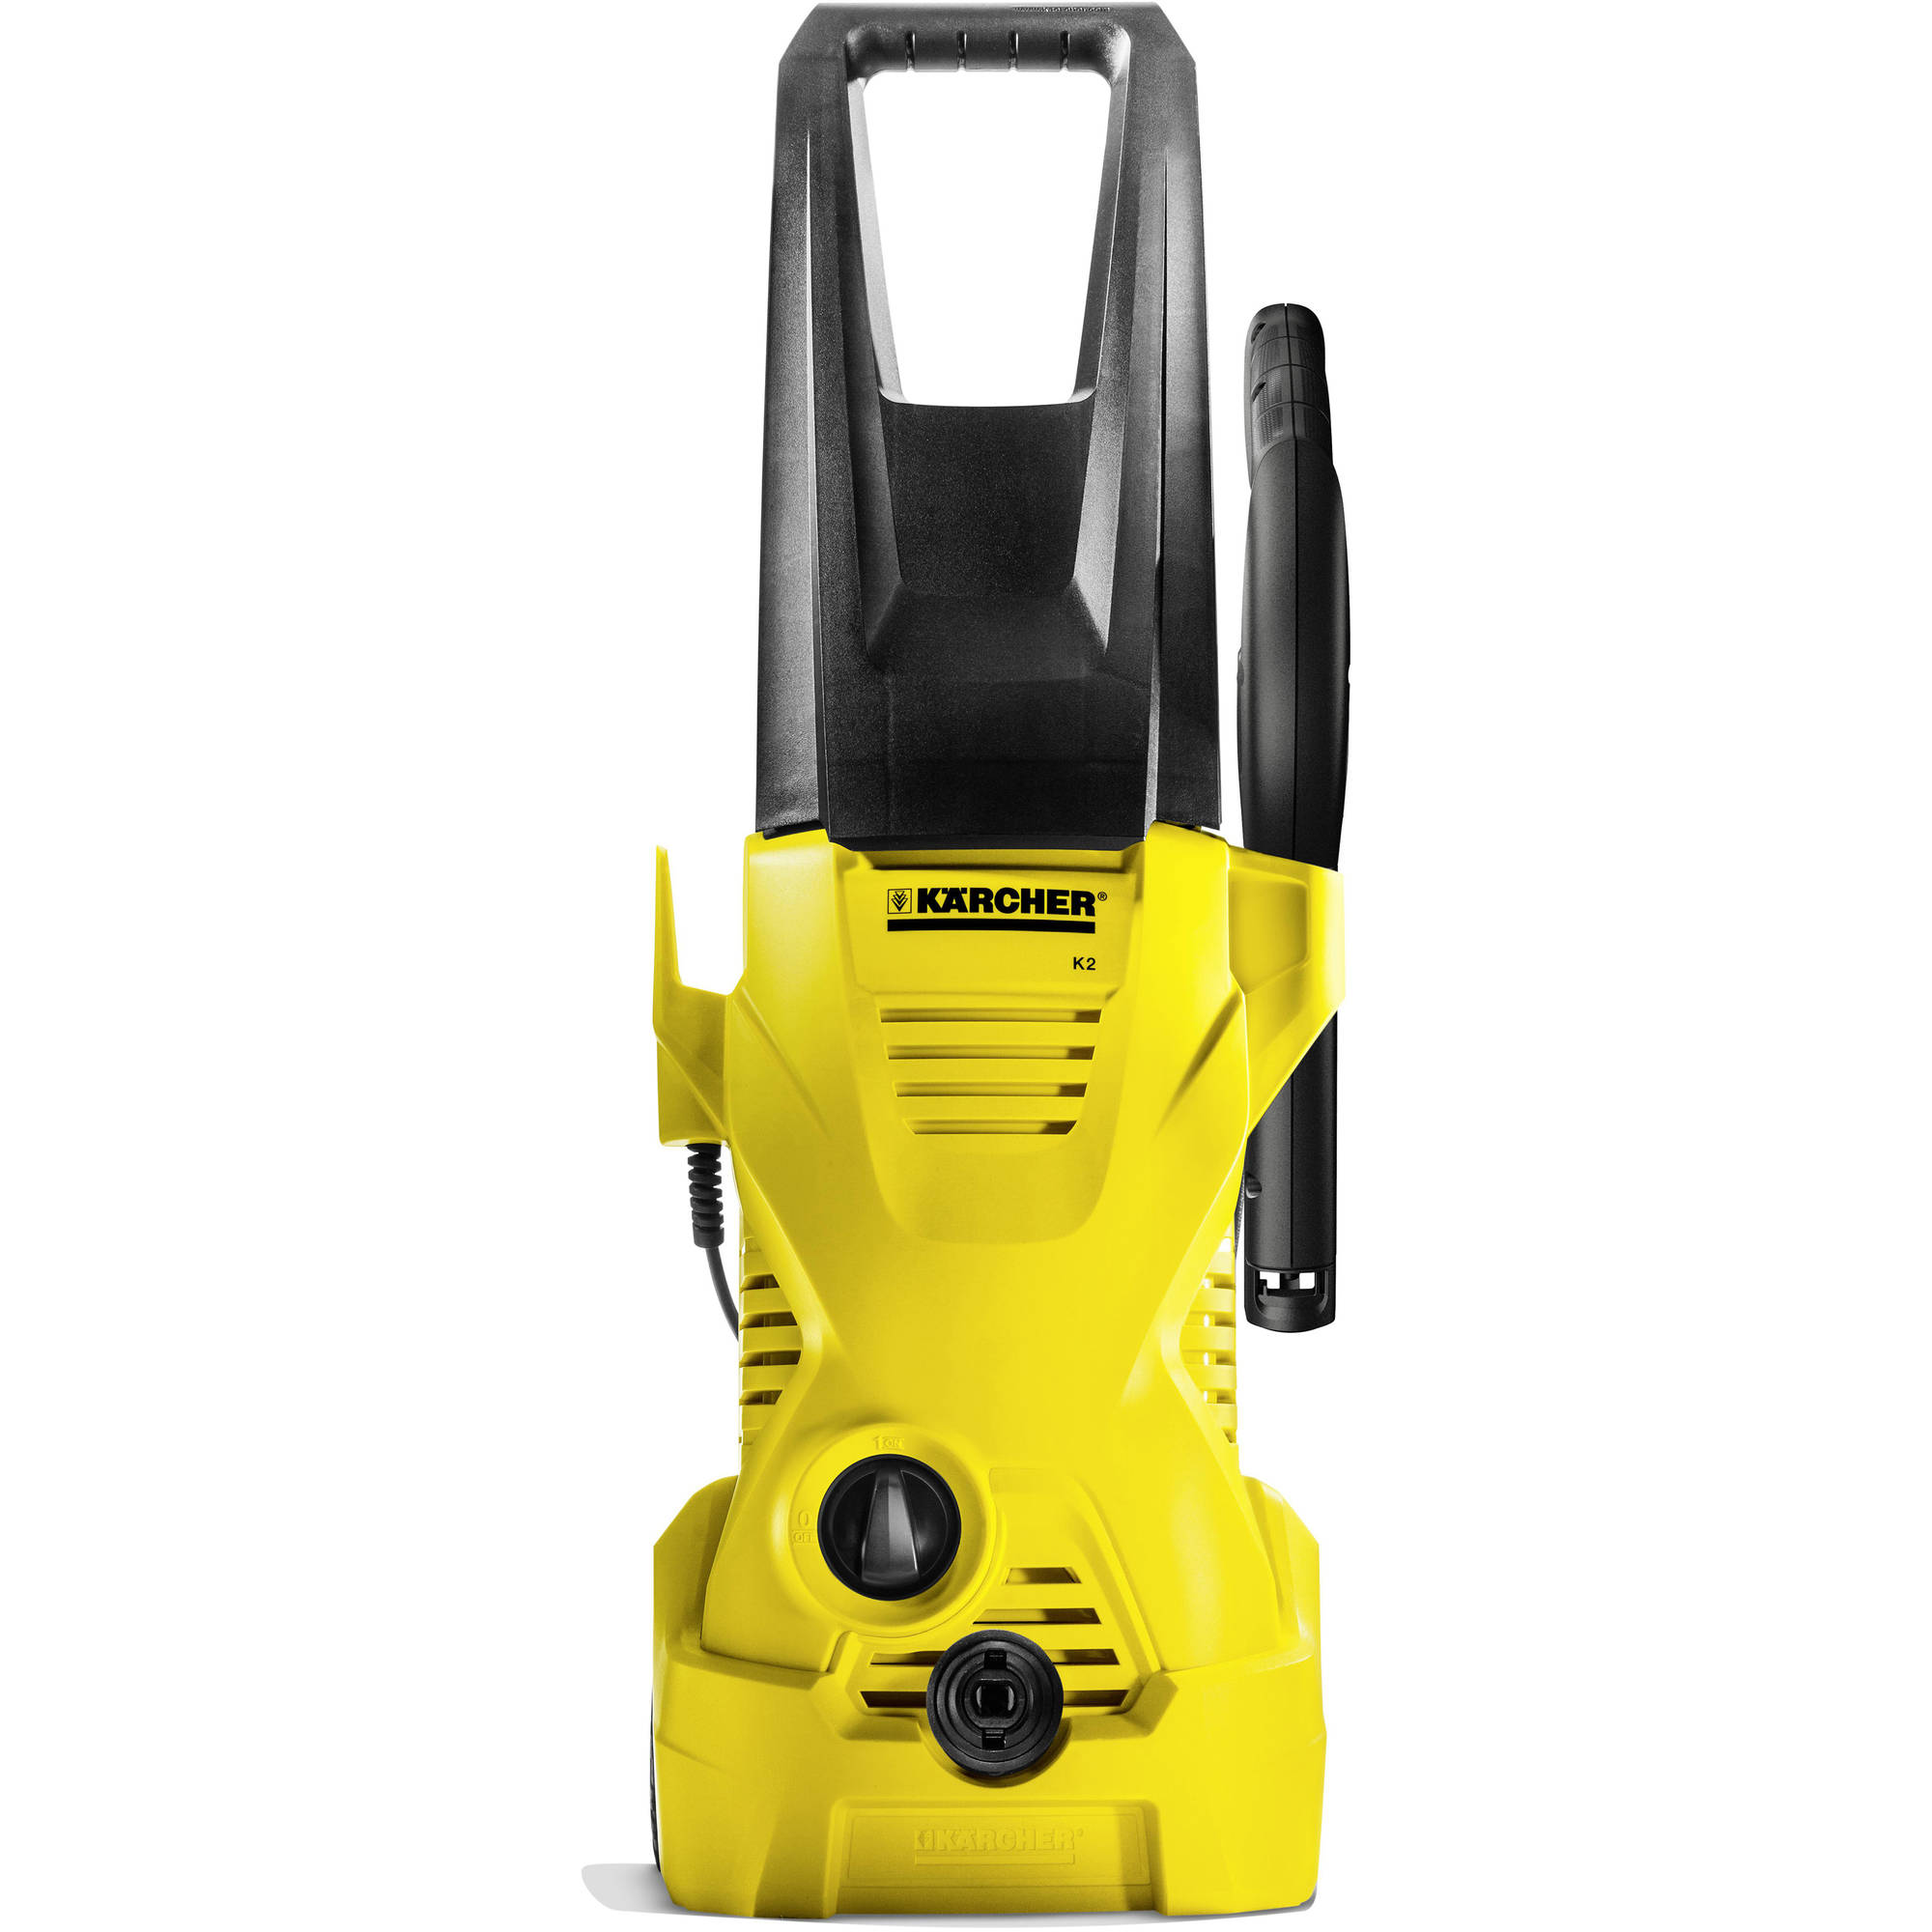 Karcher K2 Plus 1600 PSI Electric Pressure Washer